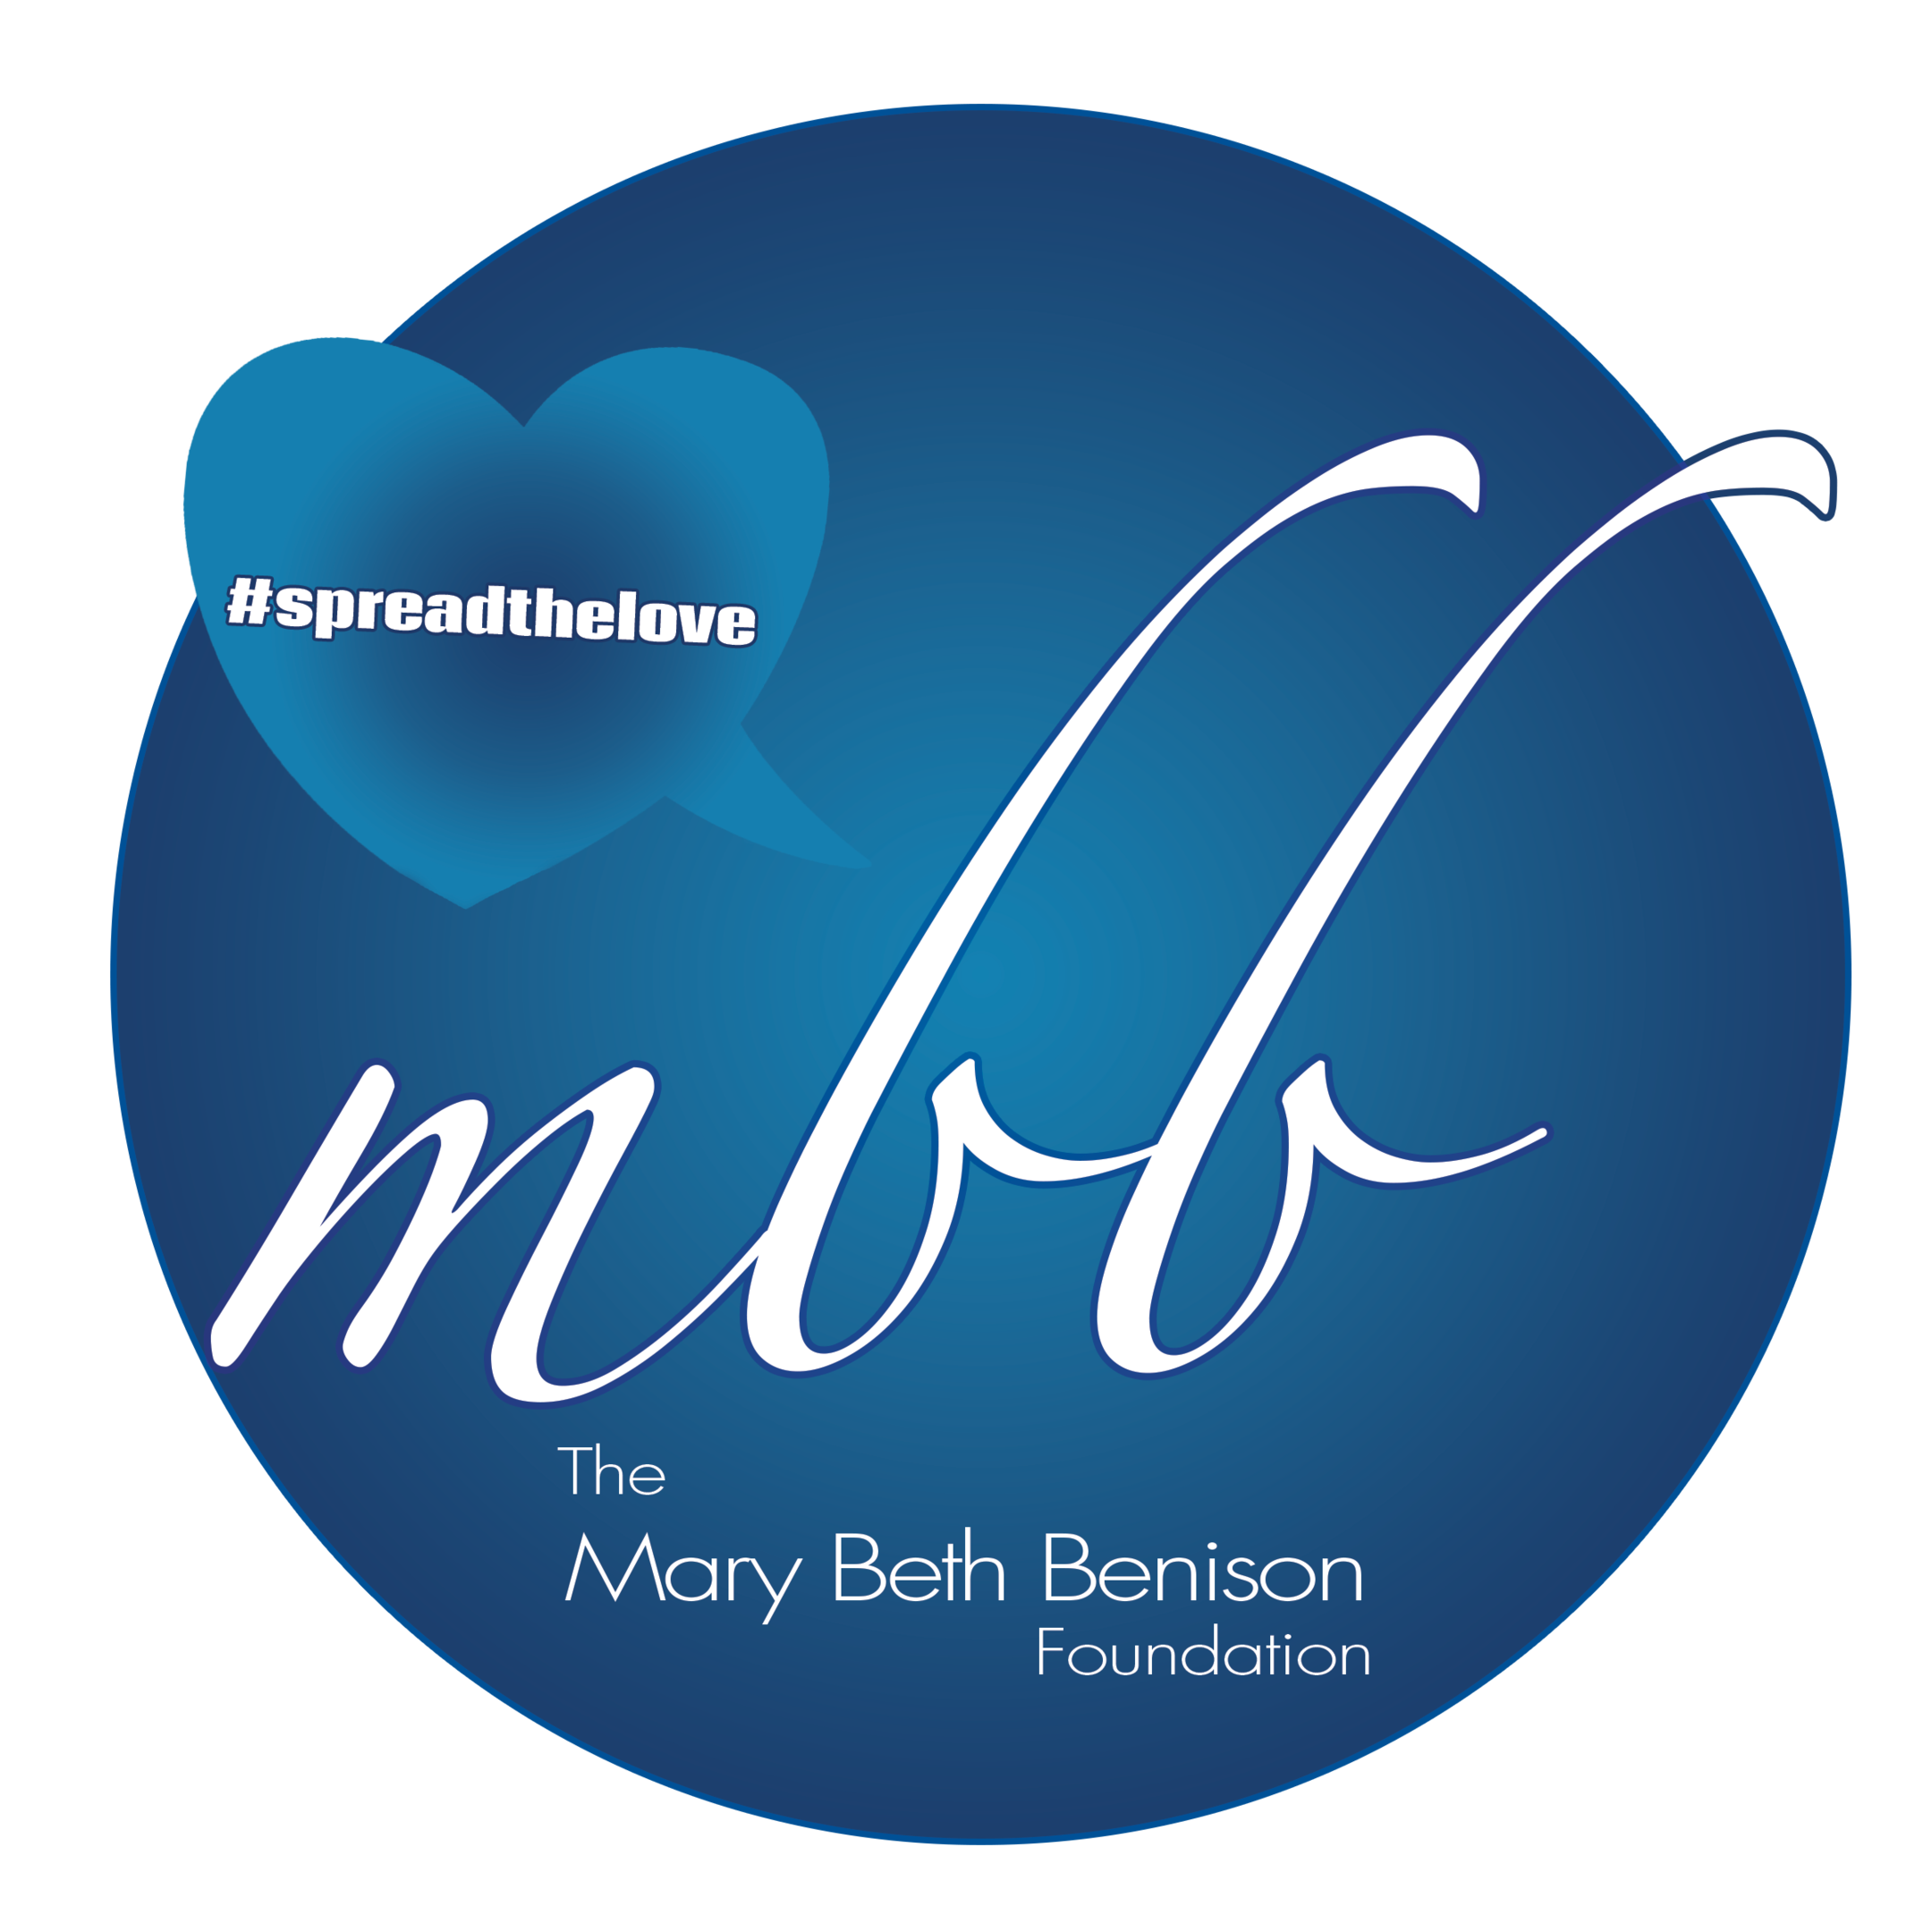 mary-beth-benison-foundation-inc_processed_49942213caa5038e7113894599e72a60cf46d45e5caffe1e0cec303df9acf4be_logo.png